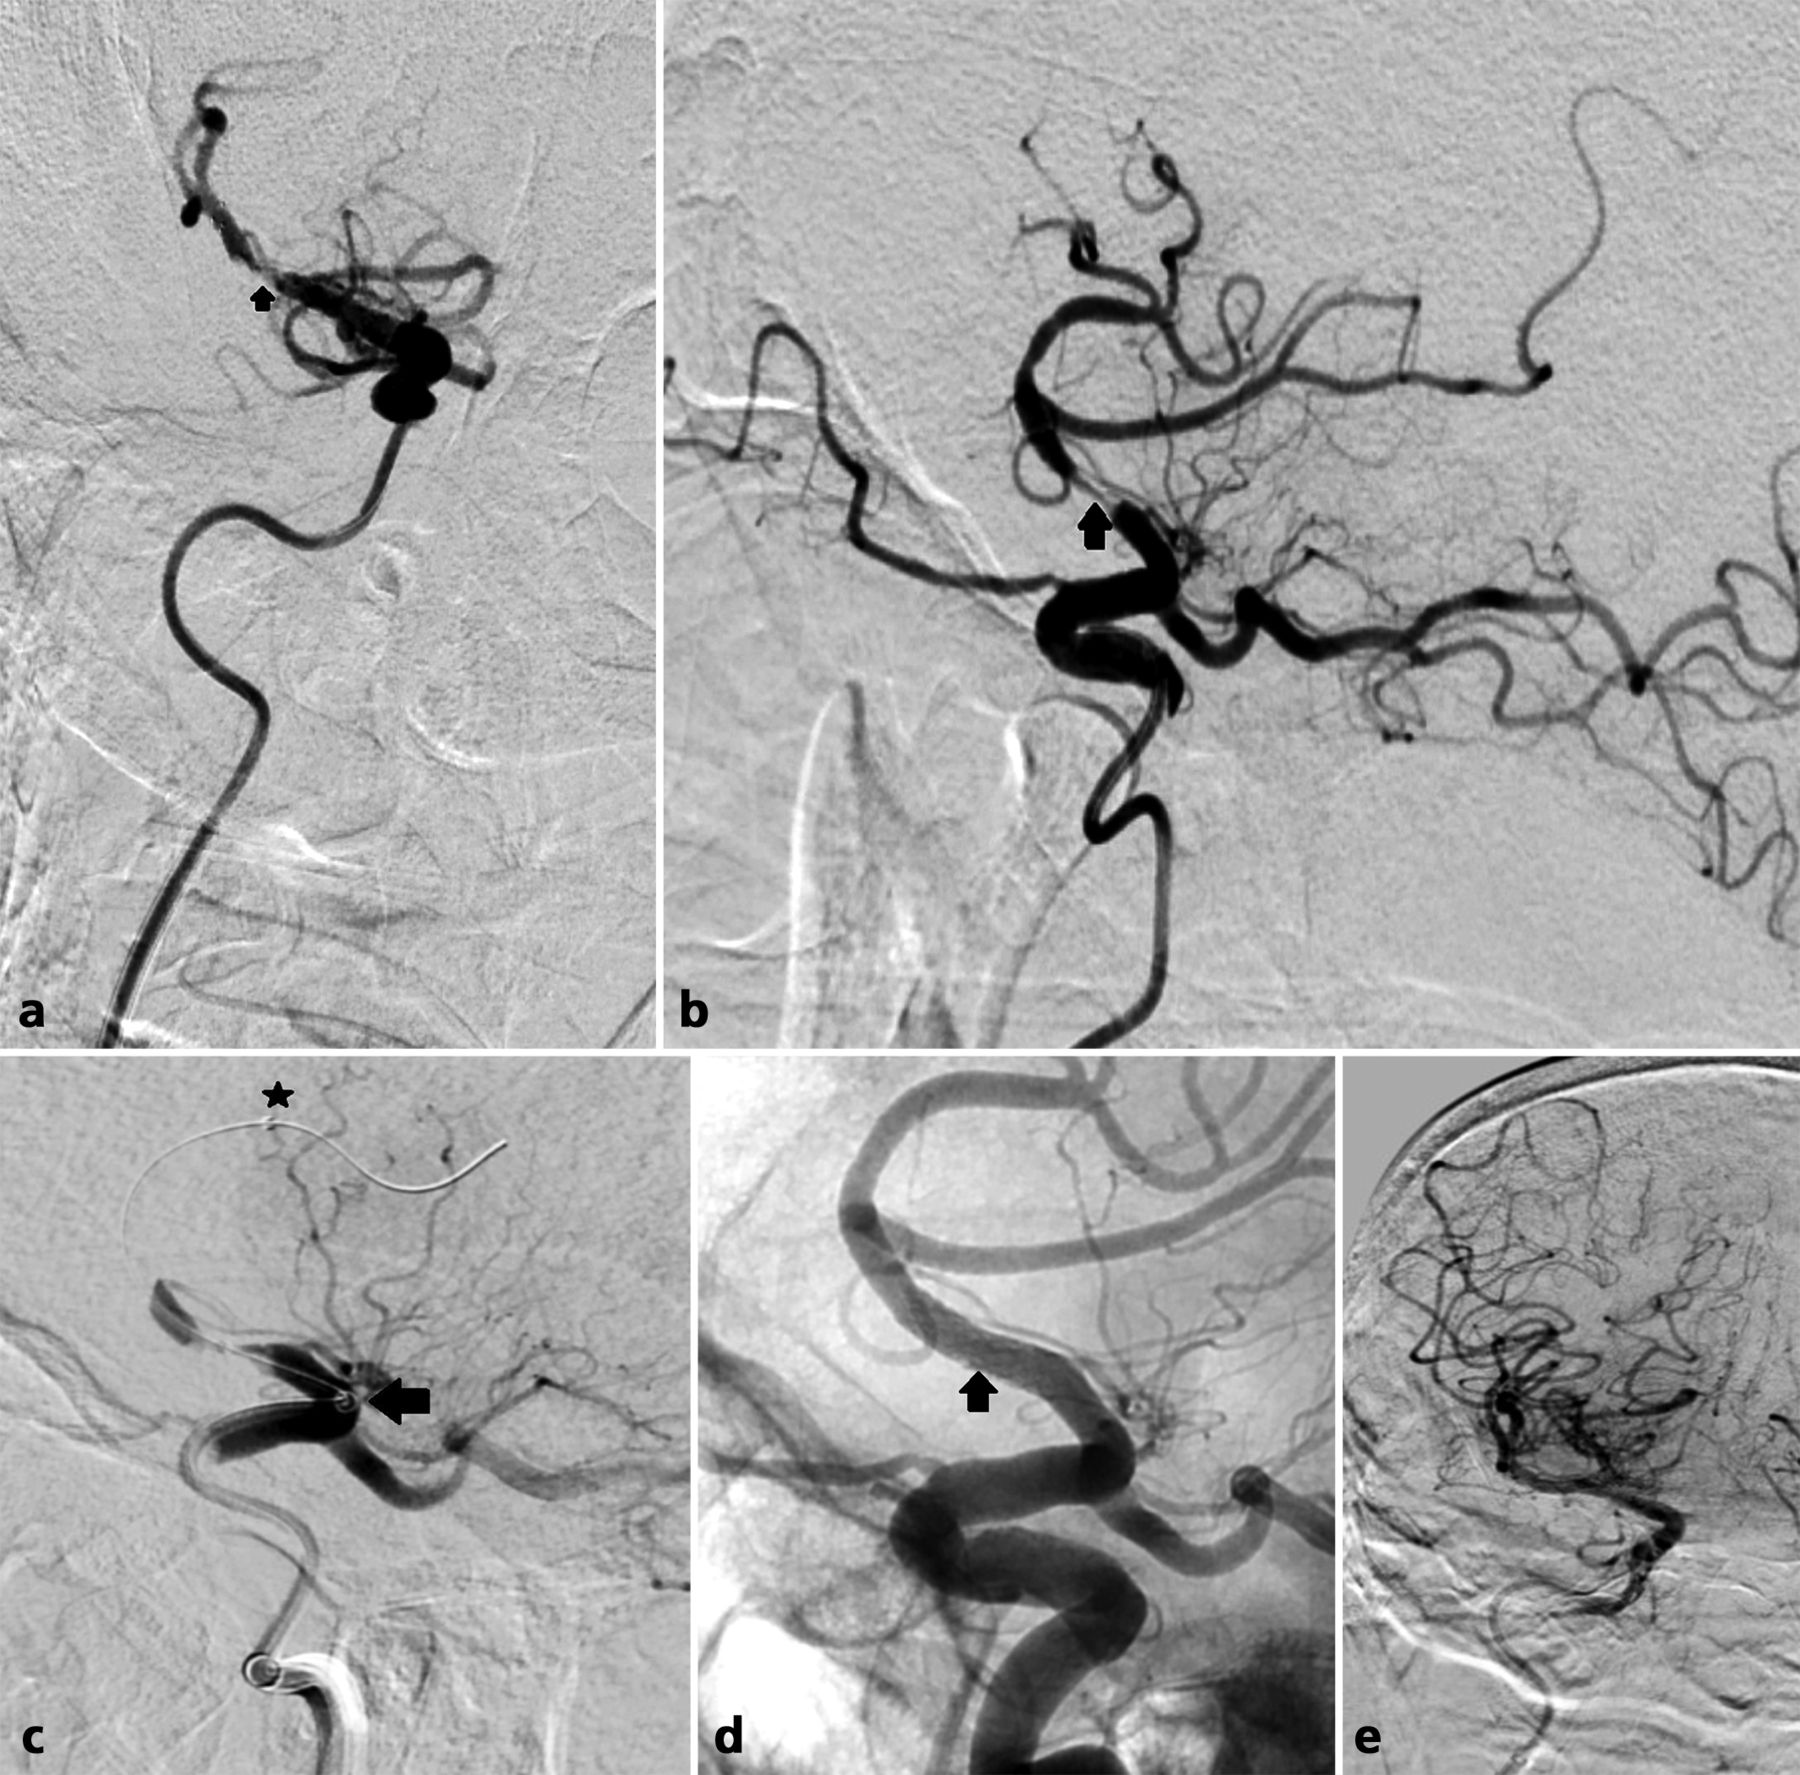 Balloon-mounted stents for acute intracranial large vessel